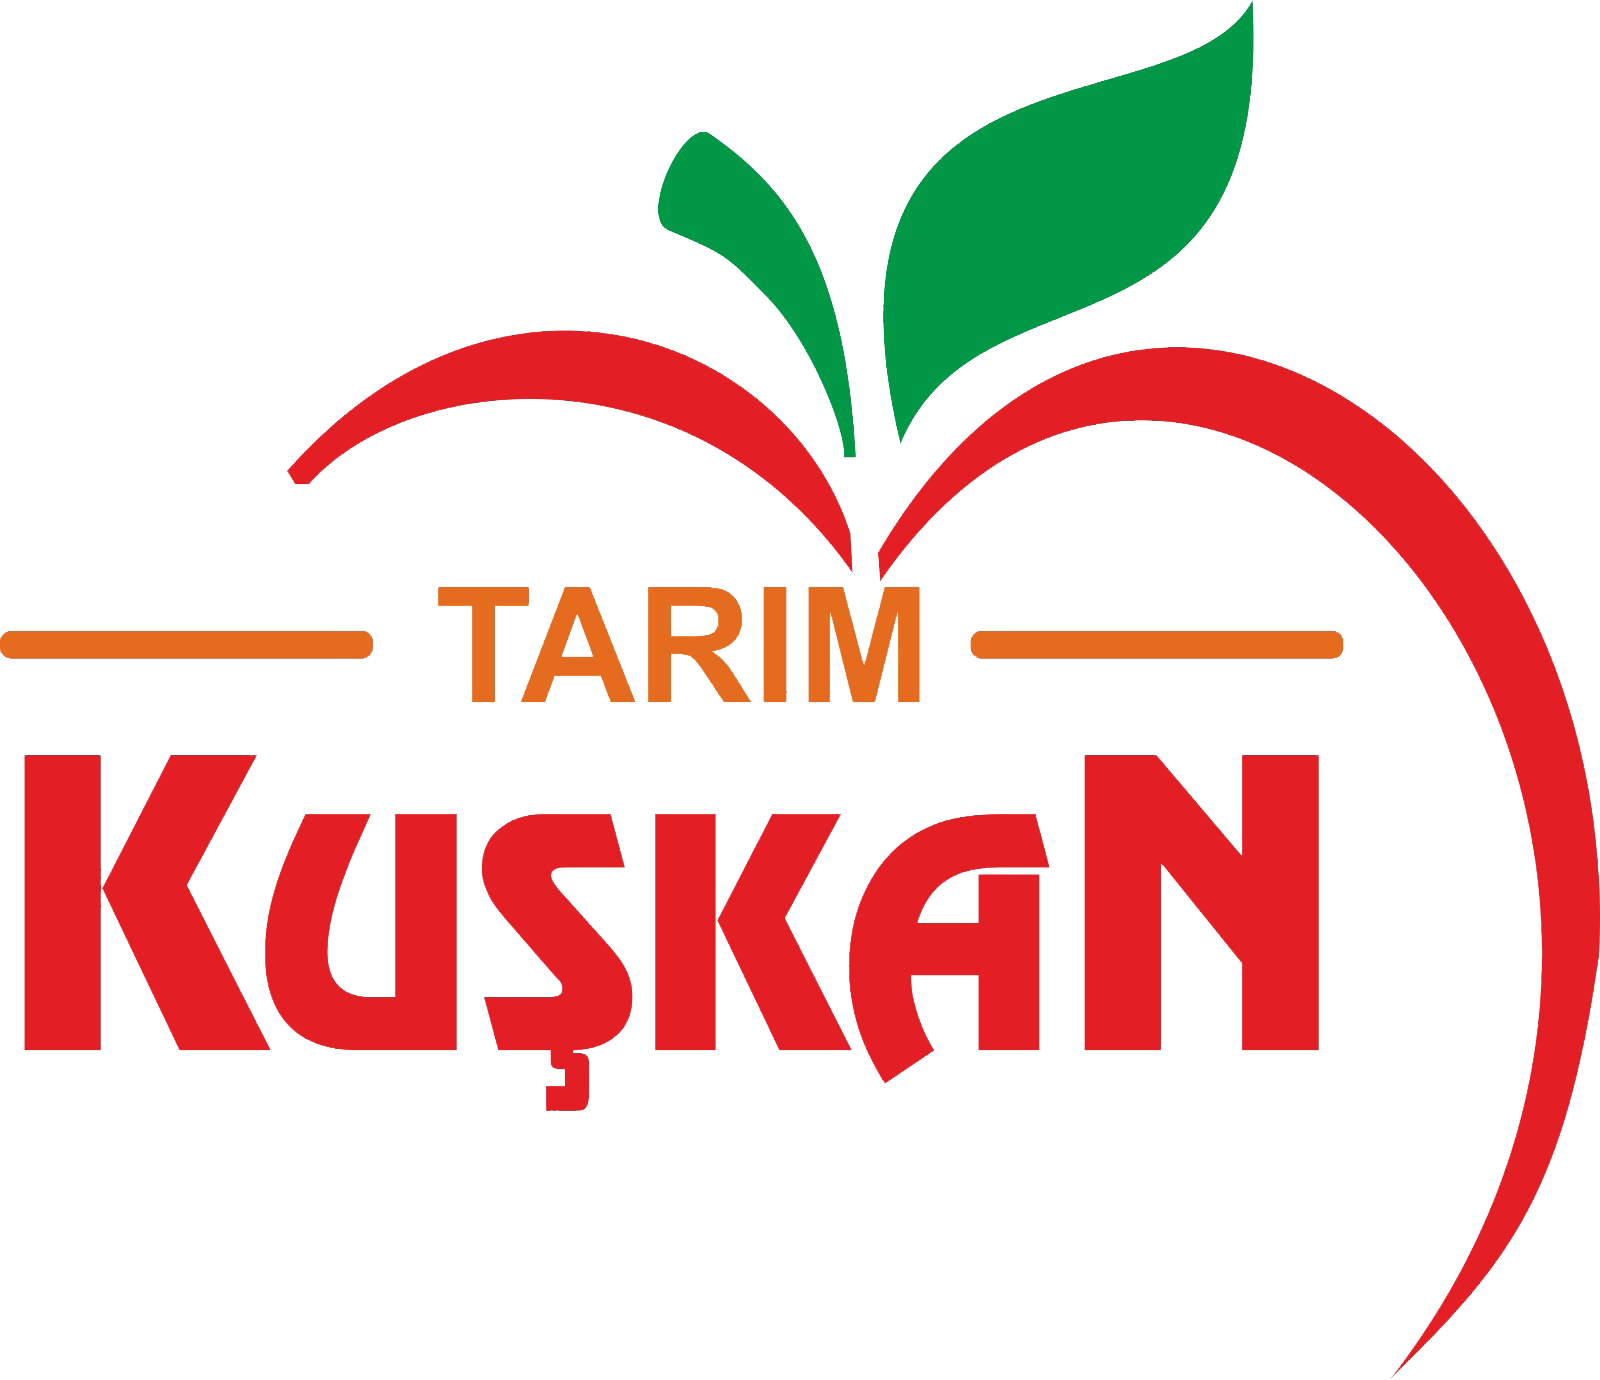 Recipe 4 Columns - image kuskan on https://kuskantarim.com